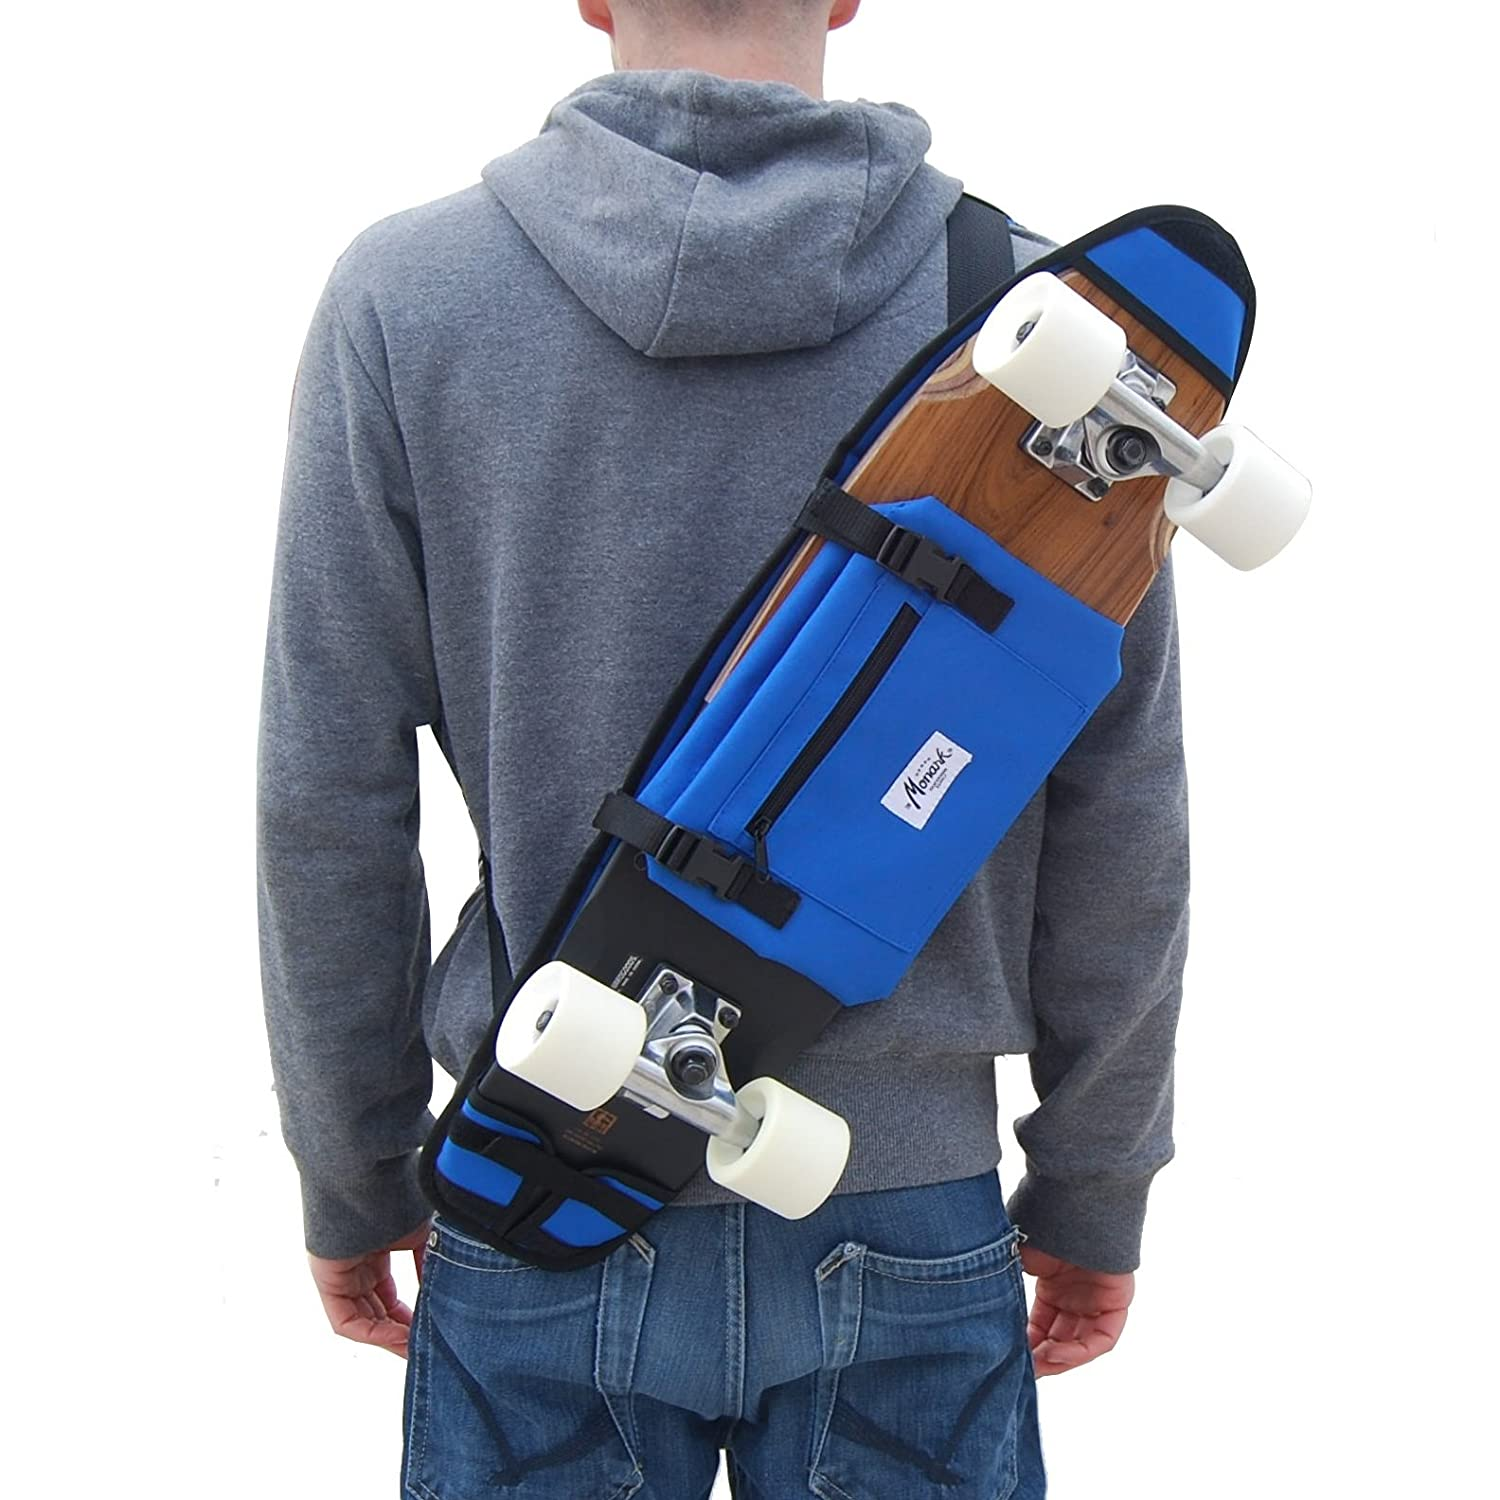 "Funda para Skate Bandolera Porta Skateboard 26 Y 27"" Azul. Monark Supply Idea de Regalo skate-home"